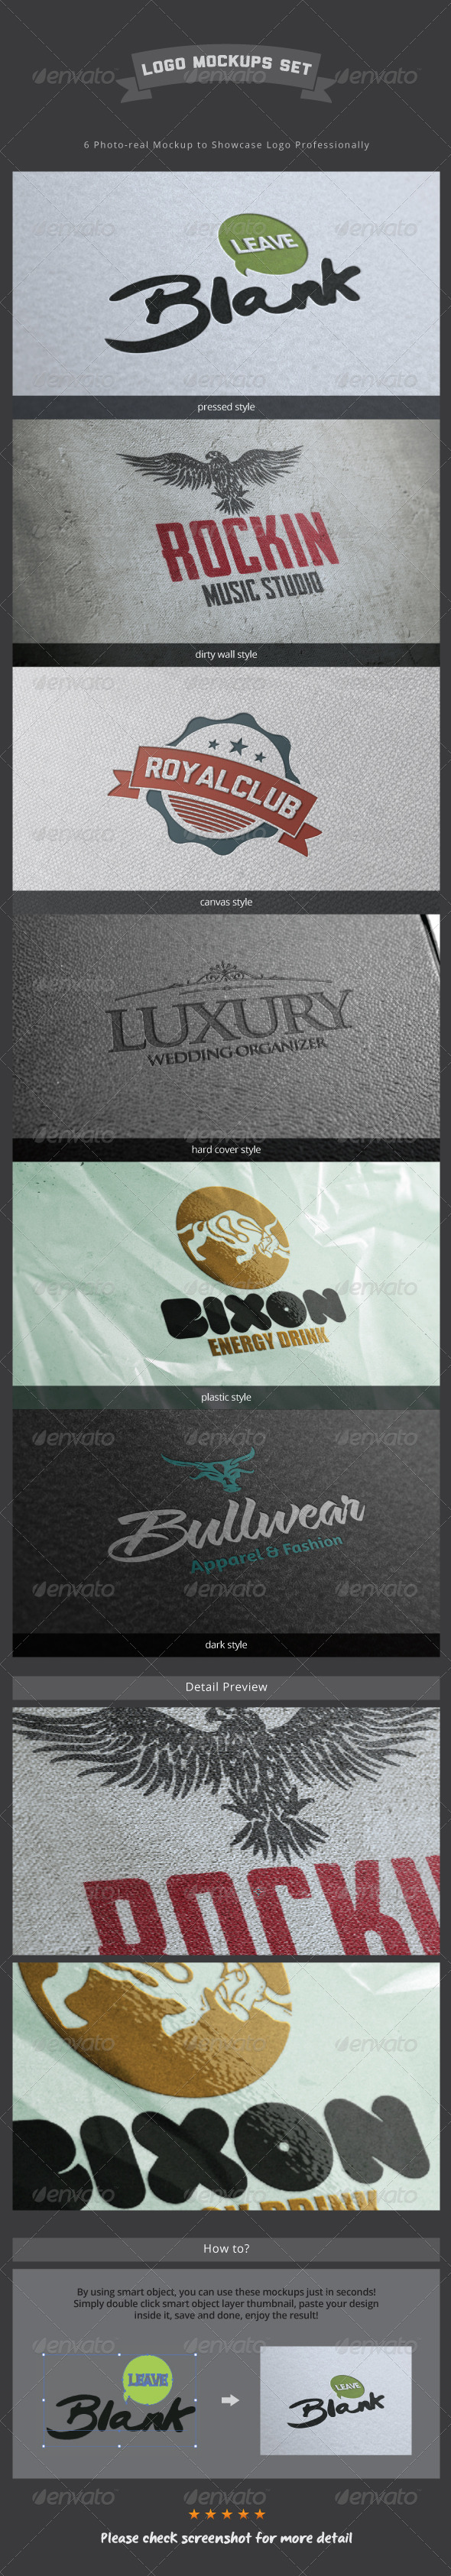 Logo Mockup Set - Logo Product Mock-Ups